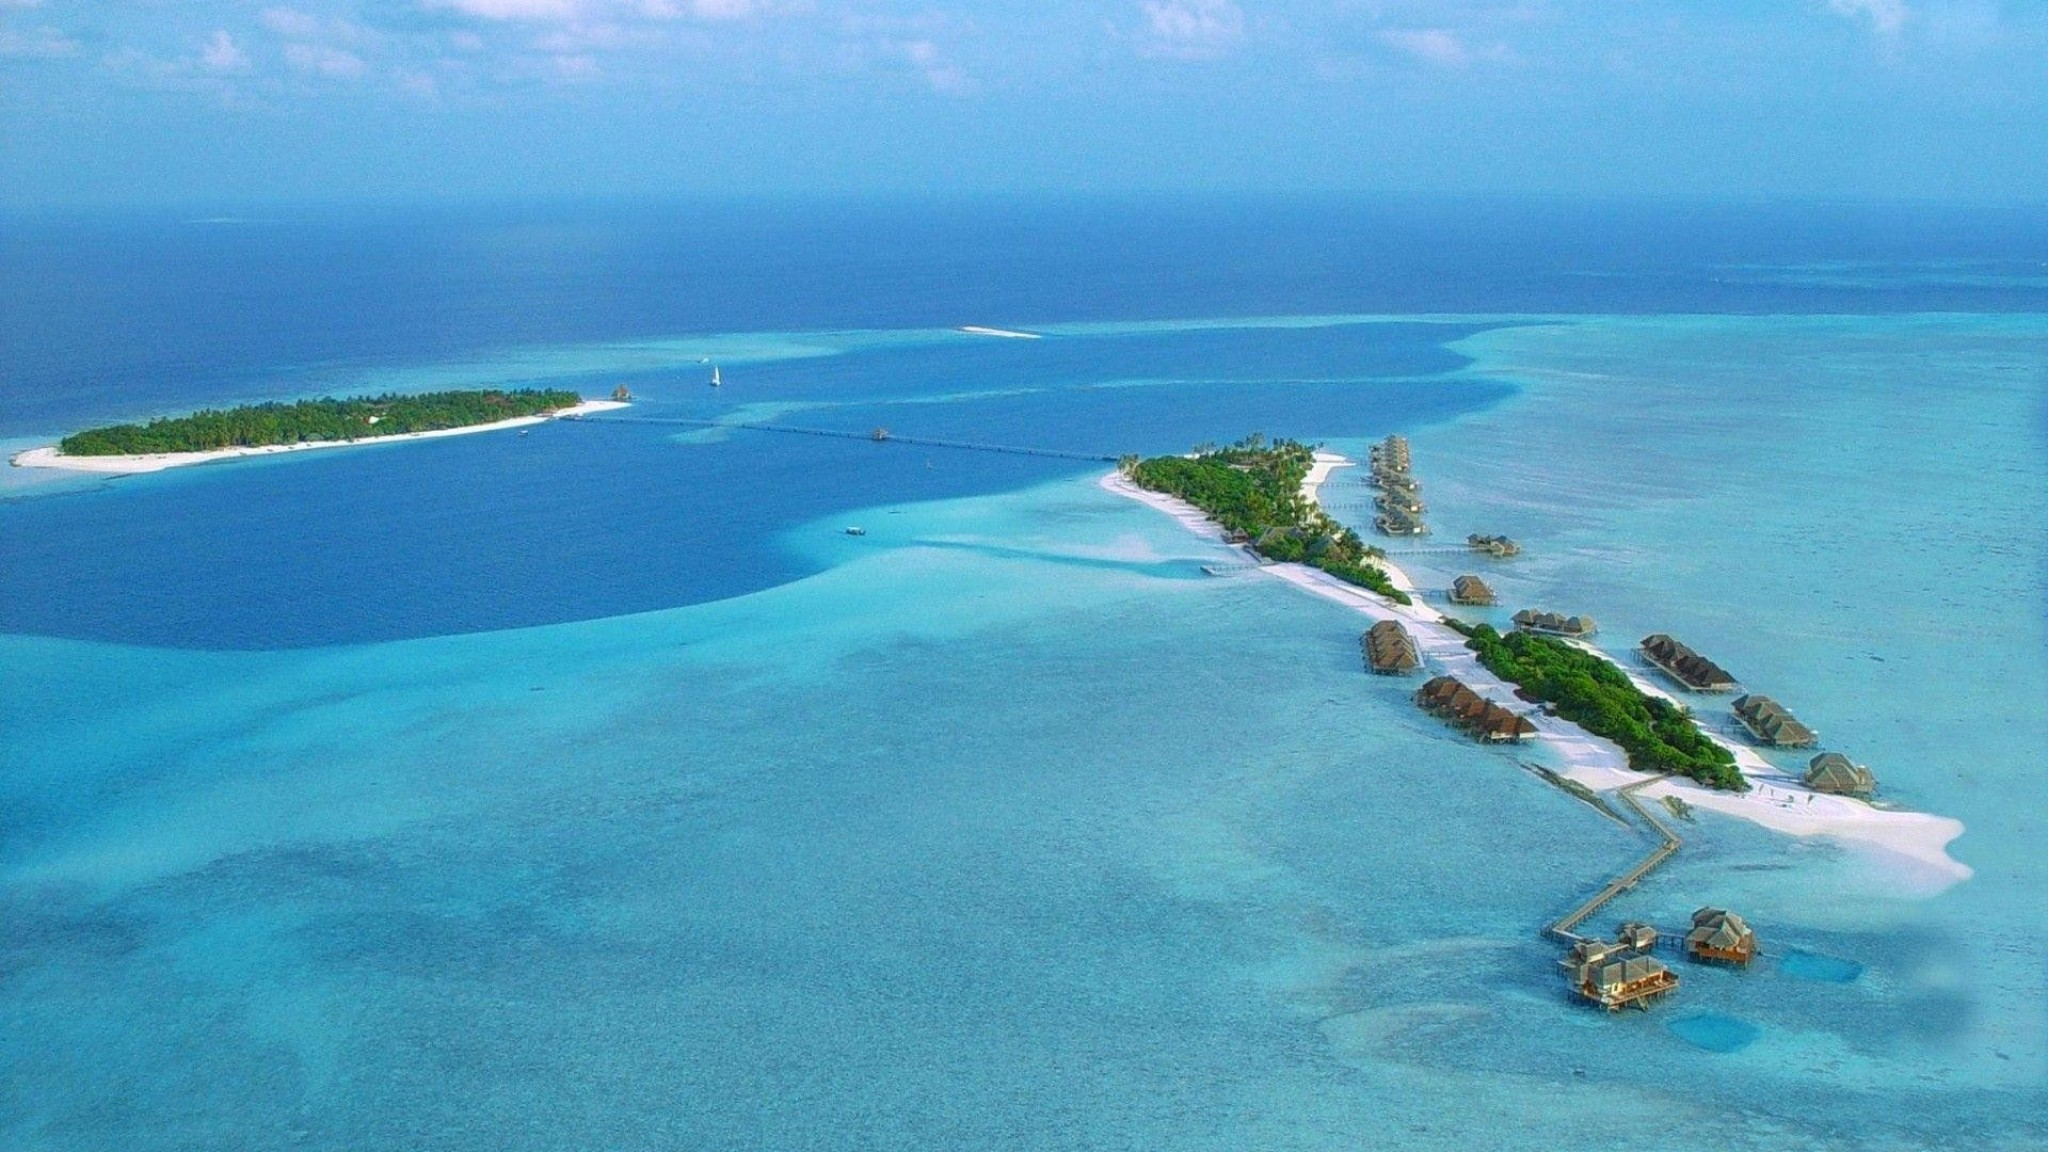 maldives  island  beach  sea  asia  resorts  geography HD HD Wallpaper